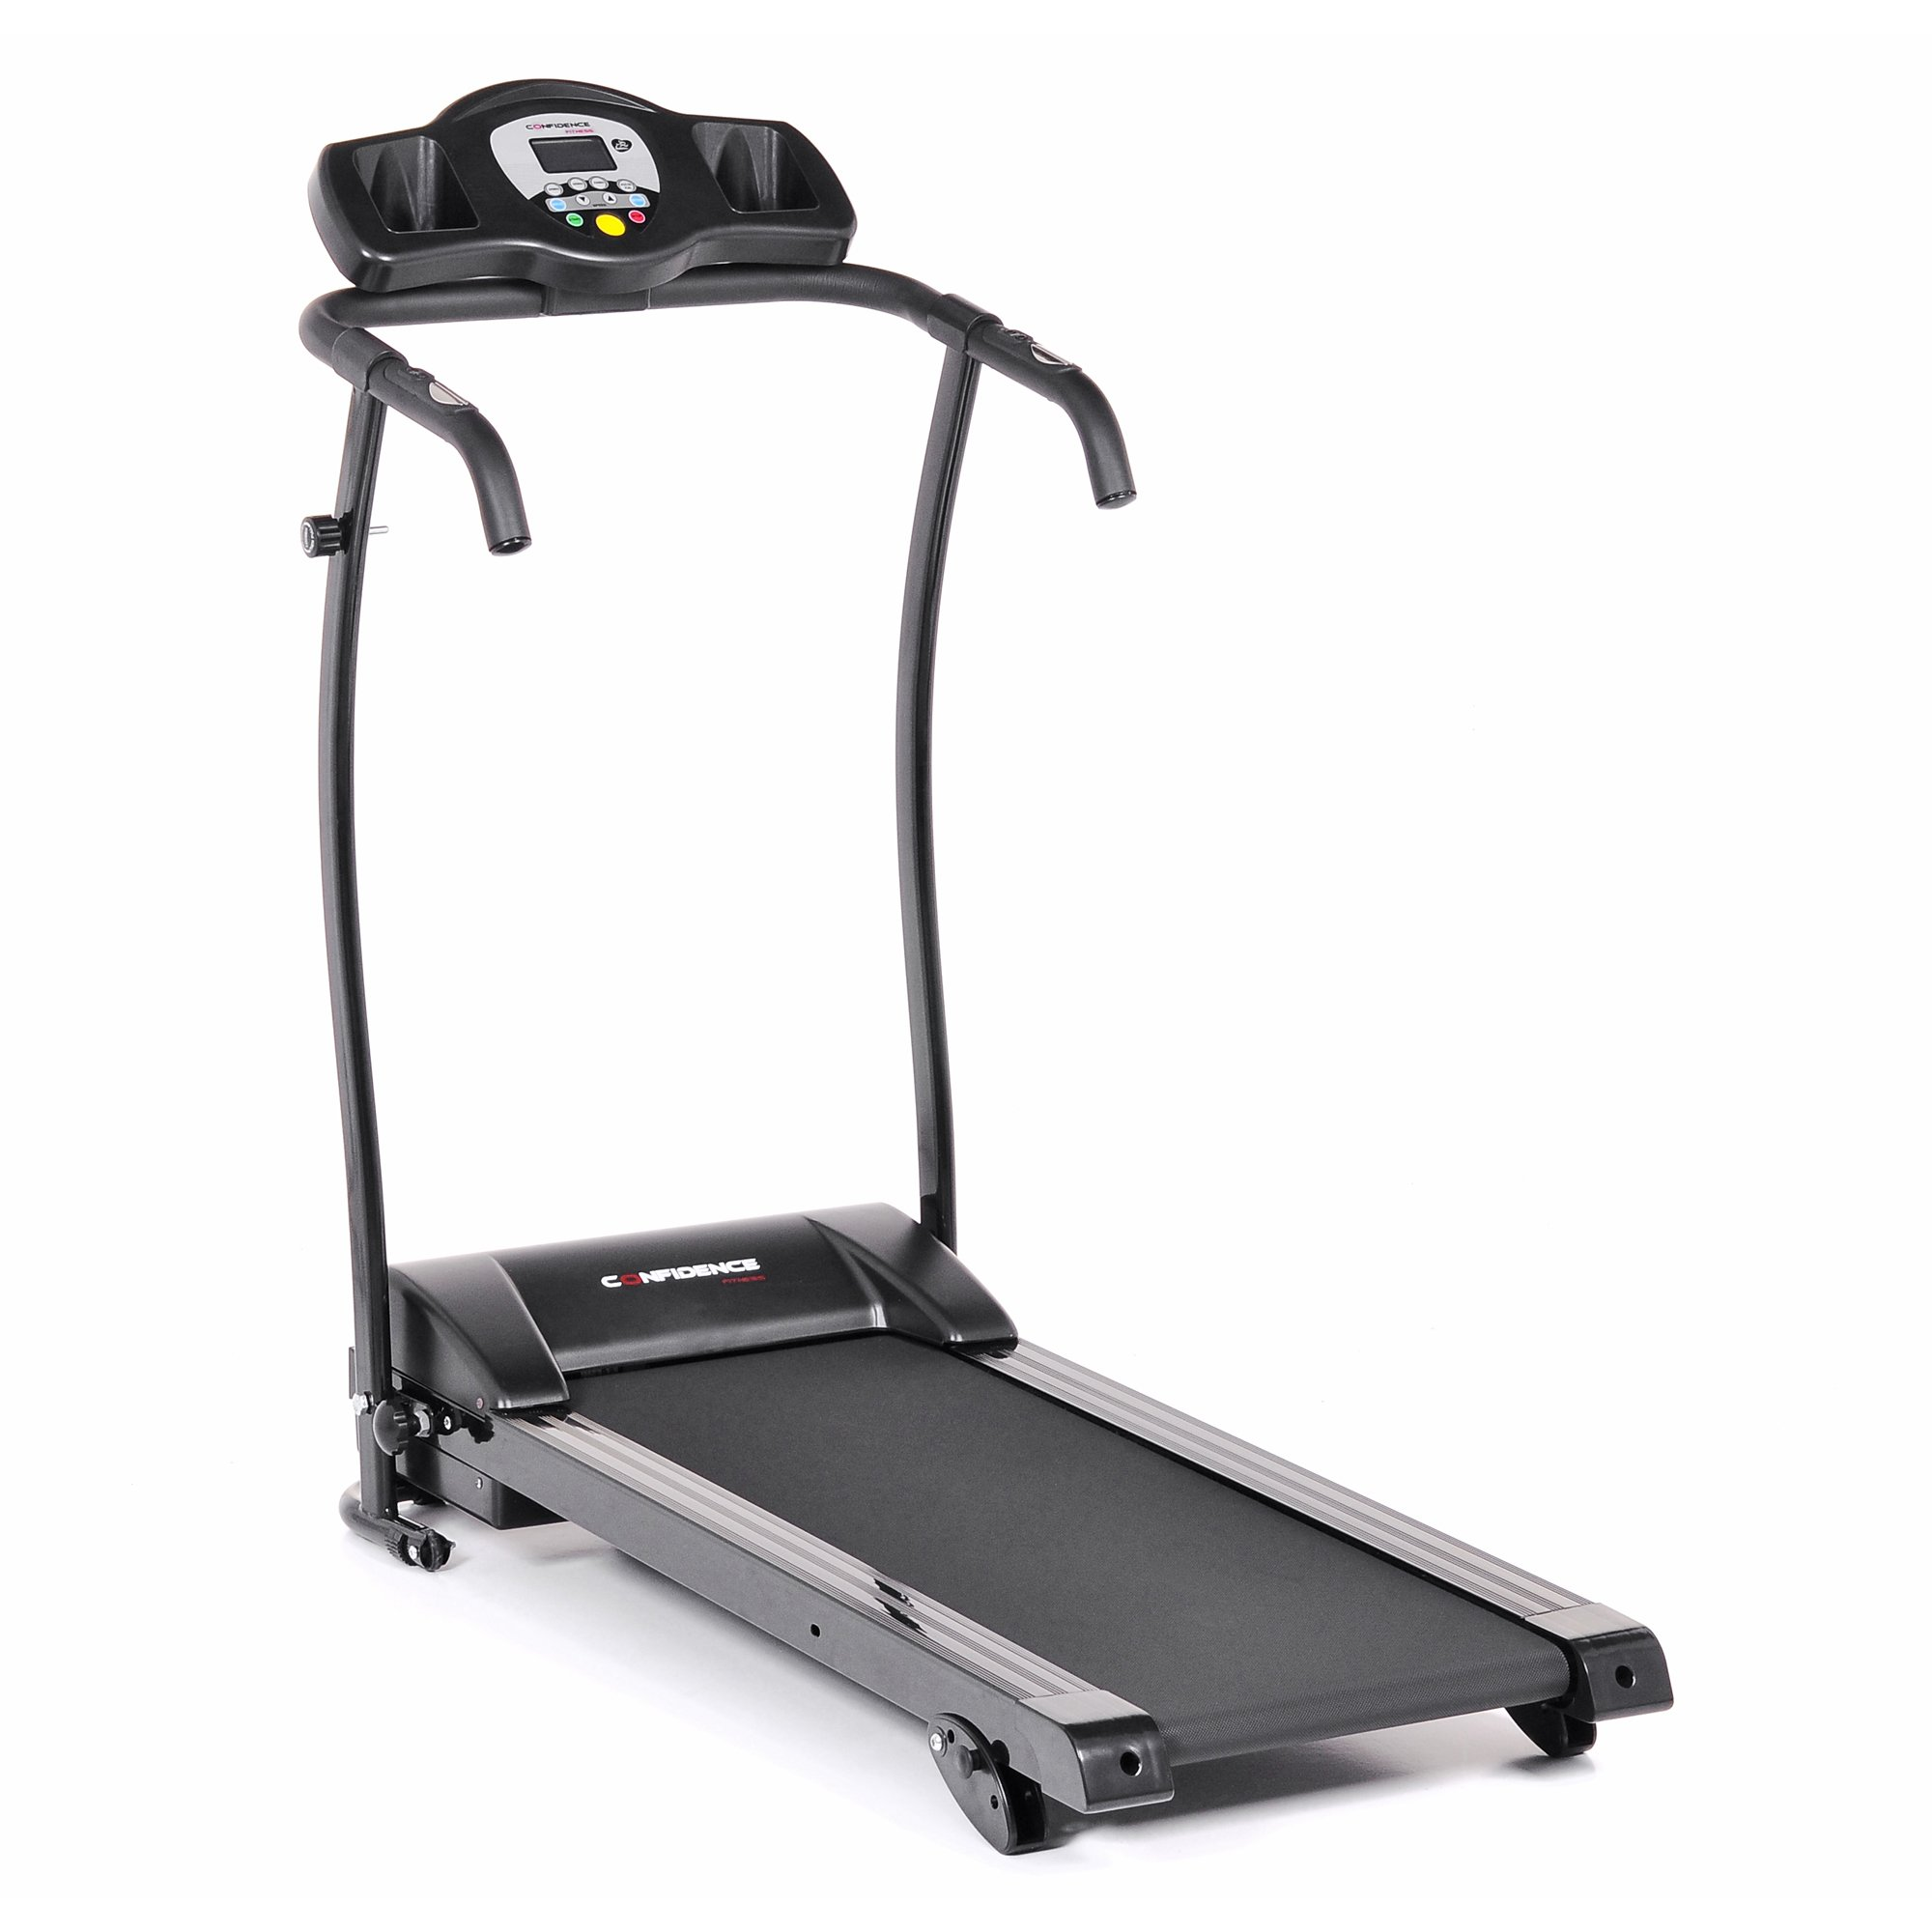 Confidence GTR Power Pro 1100W Motorized Electric Treadmill with Adjustable Manual Incline by Confidence